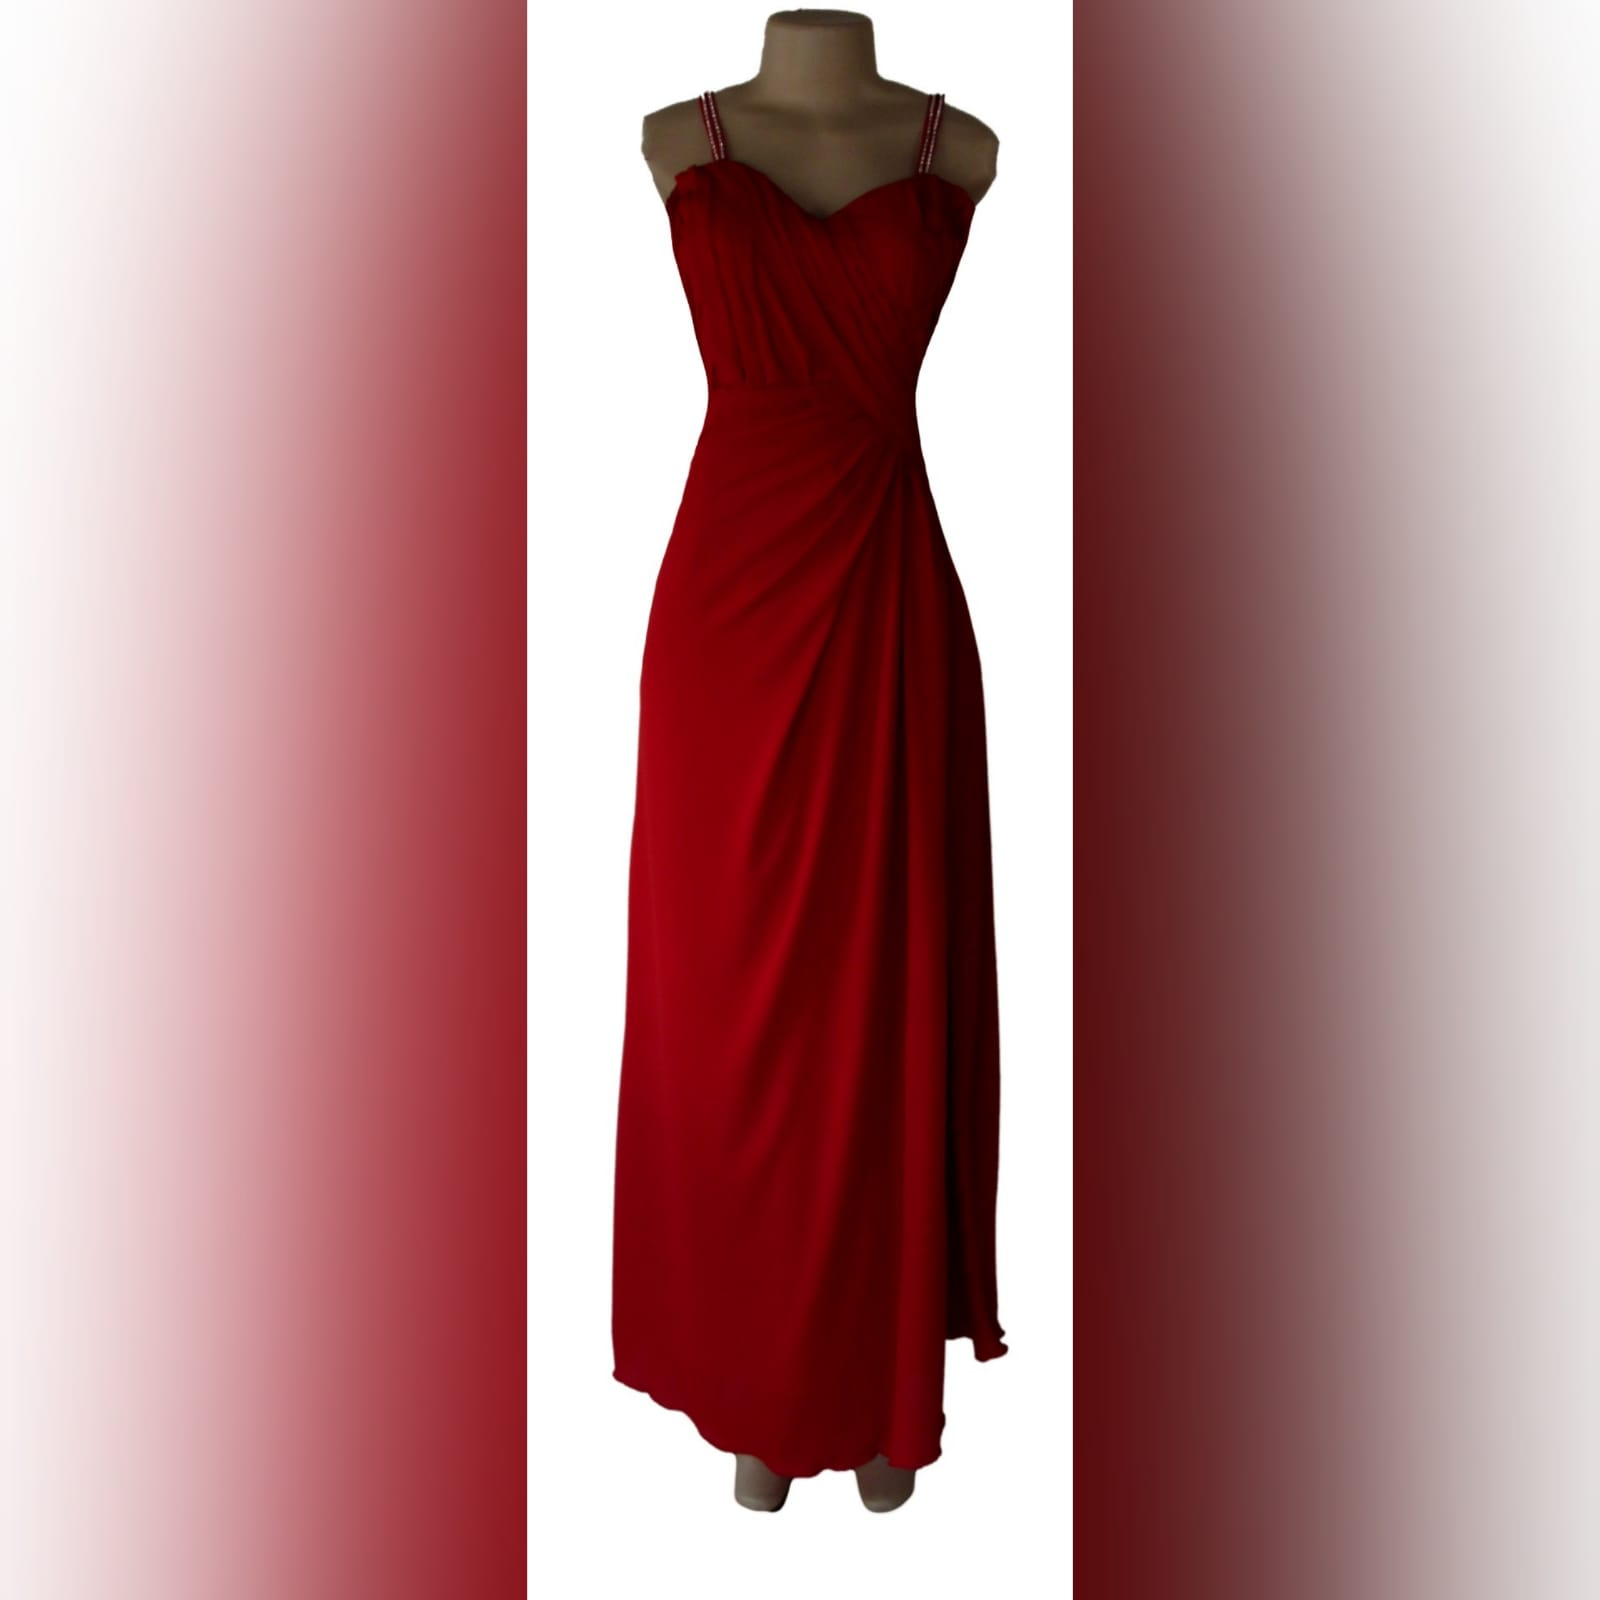 Bright red long crossed slit evening dress 1 bright red long crossed slit evening dress with a ruched bodice and hip. Shoulder straps detailed with diamante.